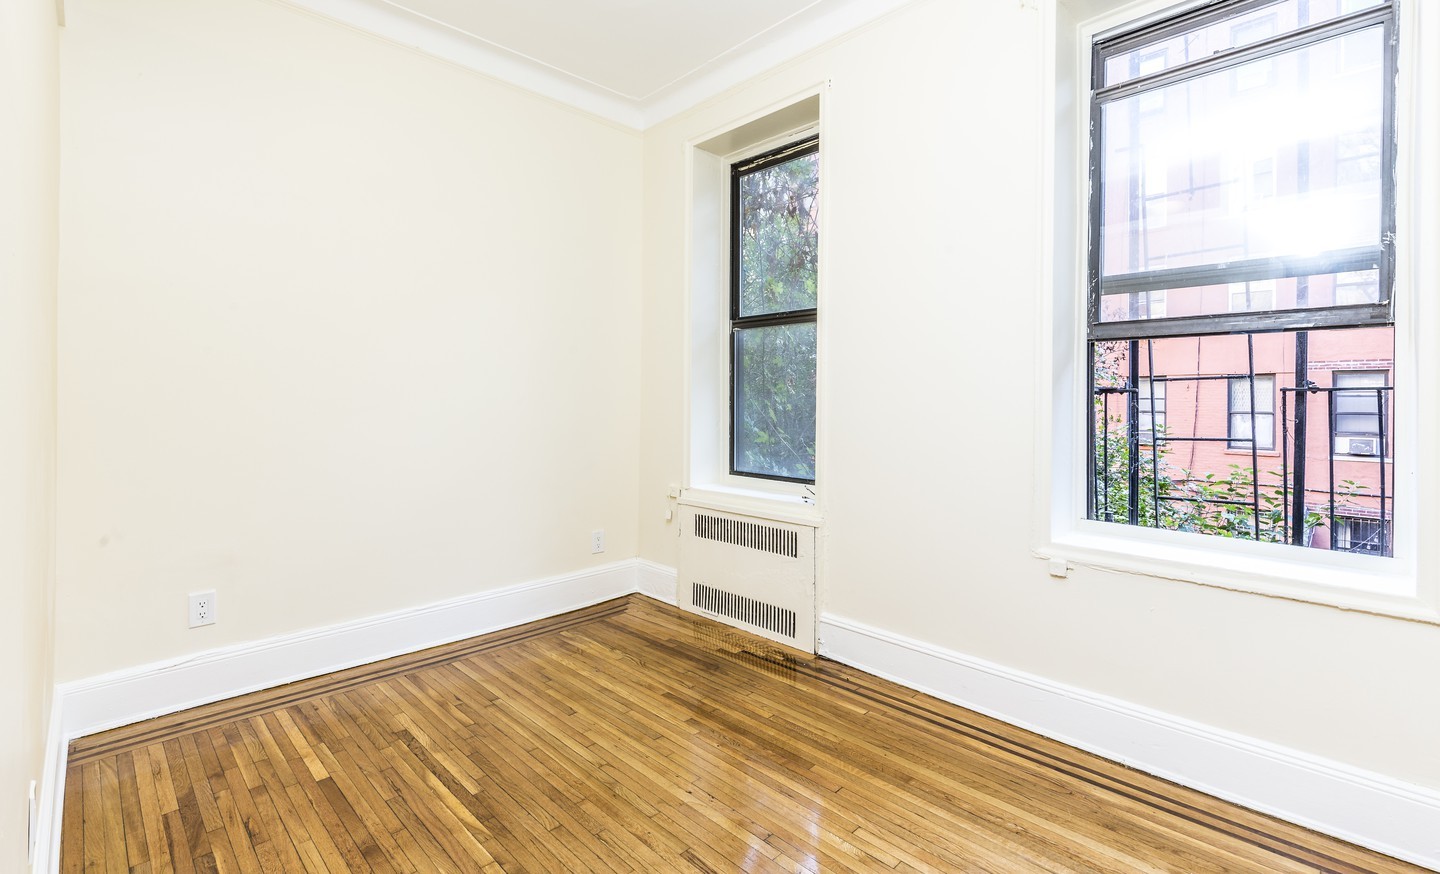 Sublets Near The Mount Private Bedroom in East Village Apartment with Exposed Brick and Hardwood Floors for College of Mount Saint Vincent Students in Bronx, NY